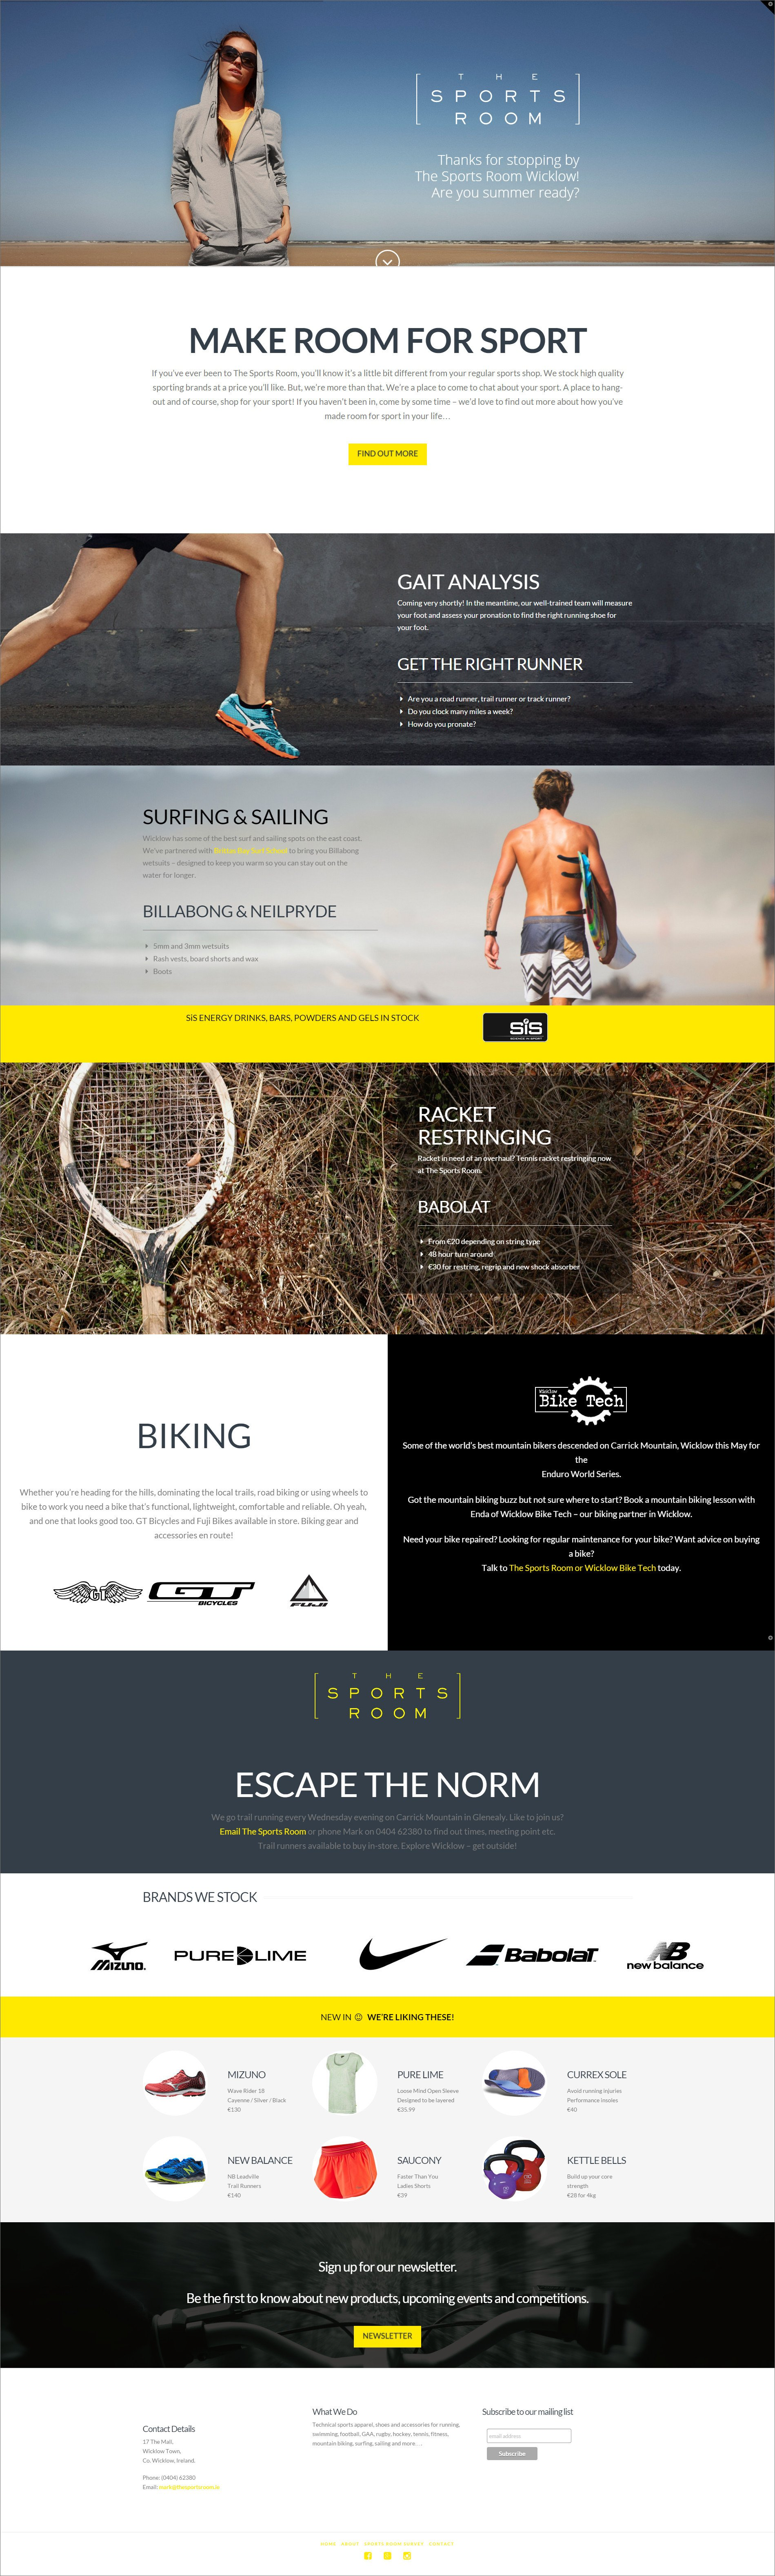 Website design for The Sports Room designed by Ridge Design Home page visual